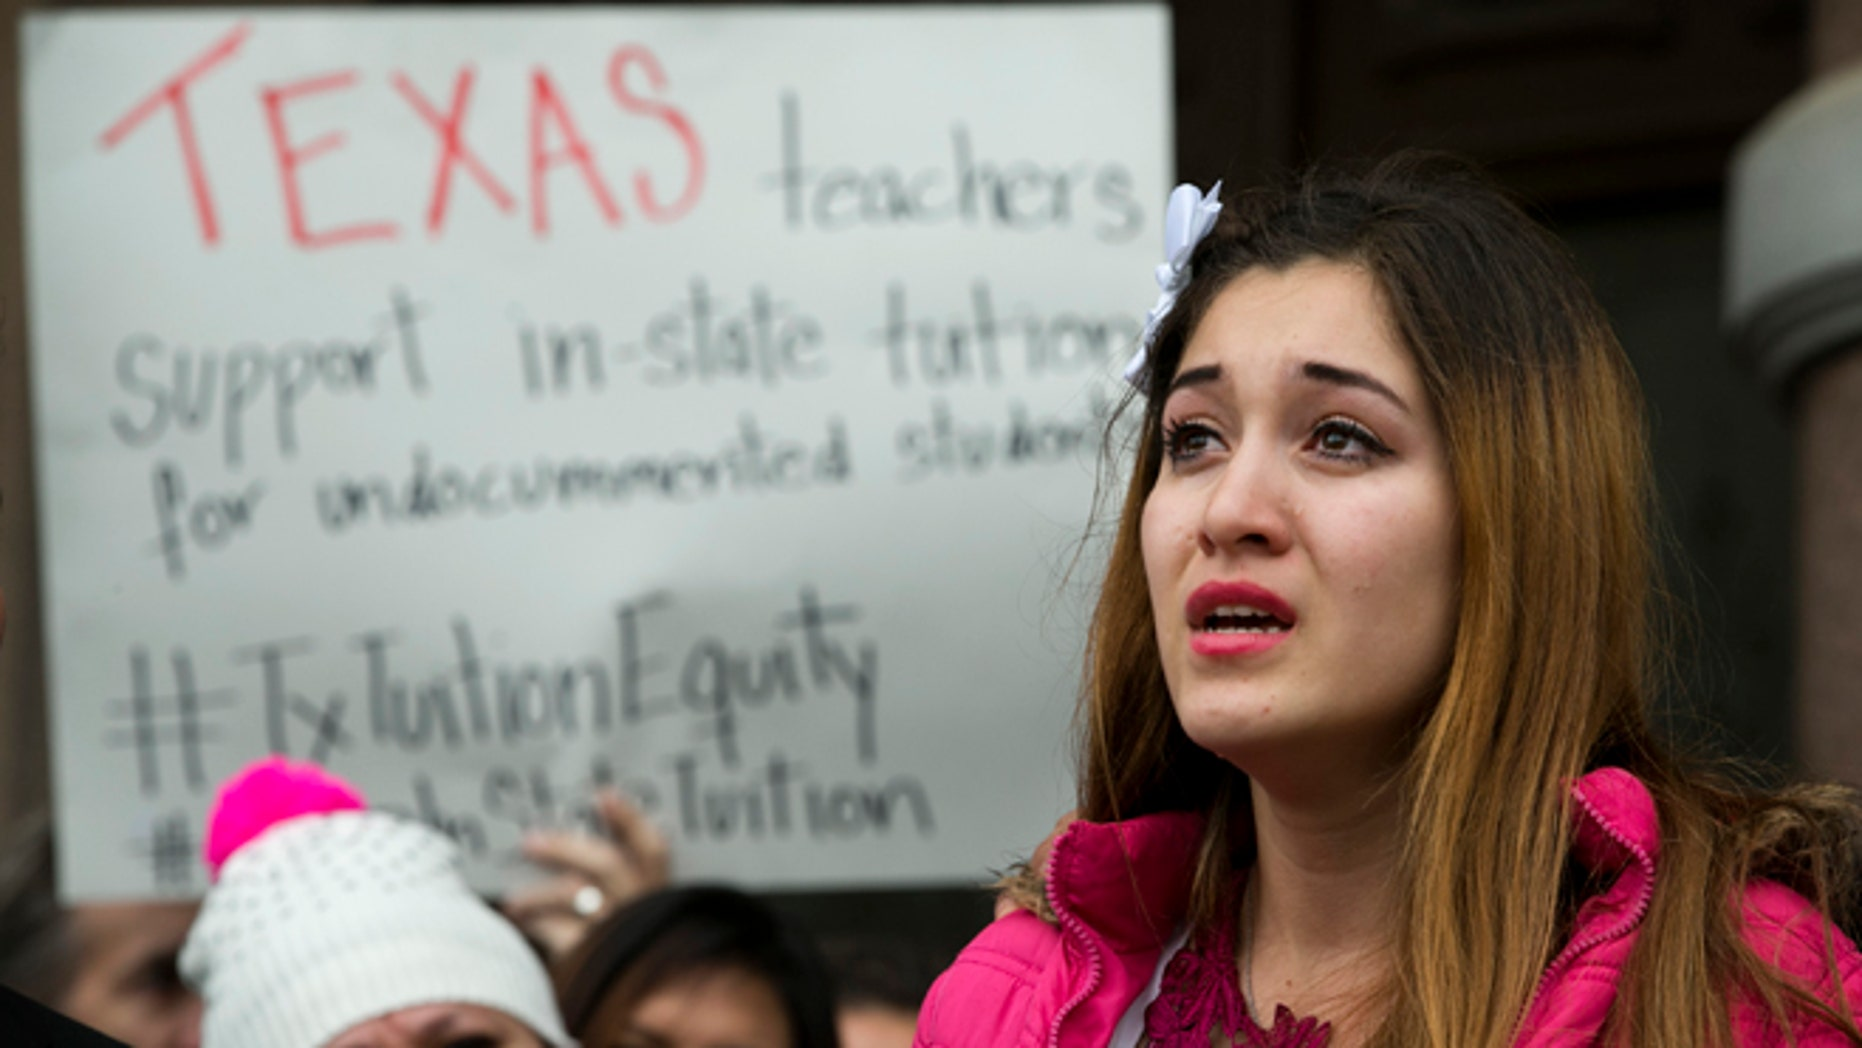 Nahiely Garcia, 19, of Edinburg, cries as she speaks in support of the HB1403, the Texas DREAM Act, at a demonstration at the Capitol in Austin, Texas, on Wednesday January 14, 2015.  More 50 people, a coalition of businesses, affected students, supporters, and lawmakers, rallied to preserve the 2001 in-state tuition law.  (AP Photo/Austin American-Statesman, Jay Janner)